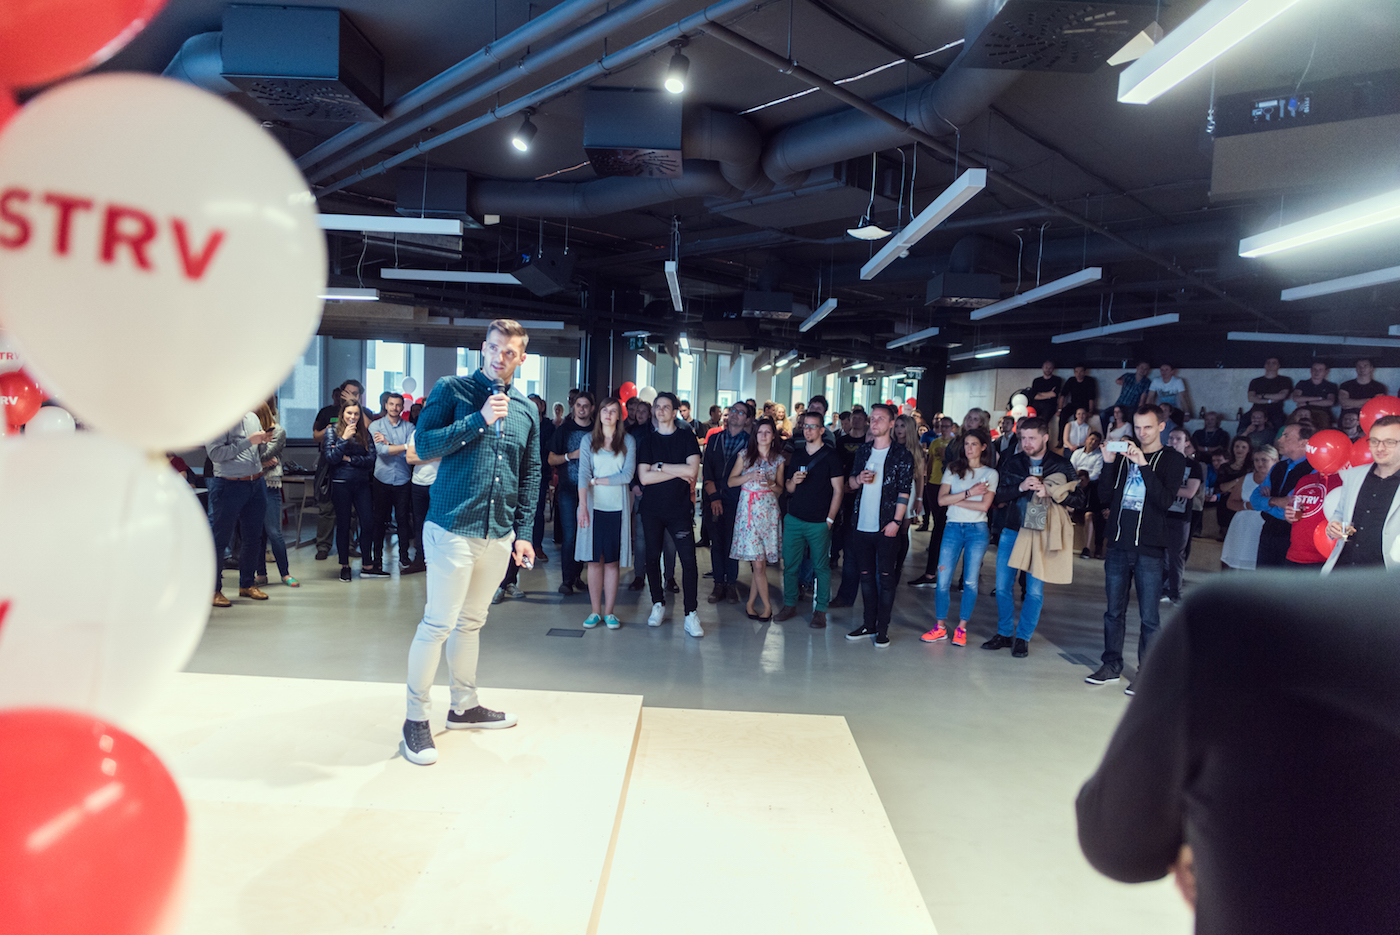 Lubo's speech in the event space